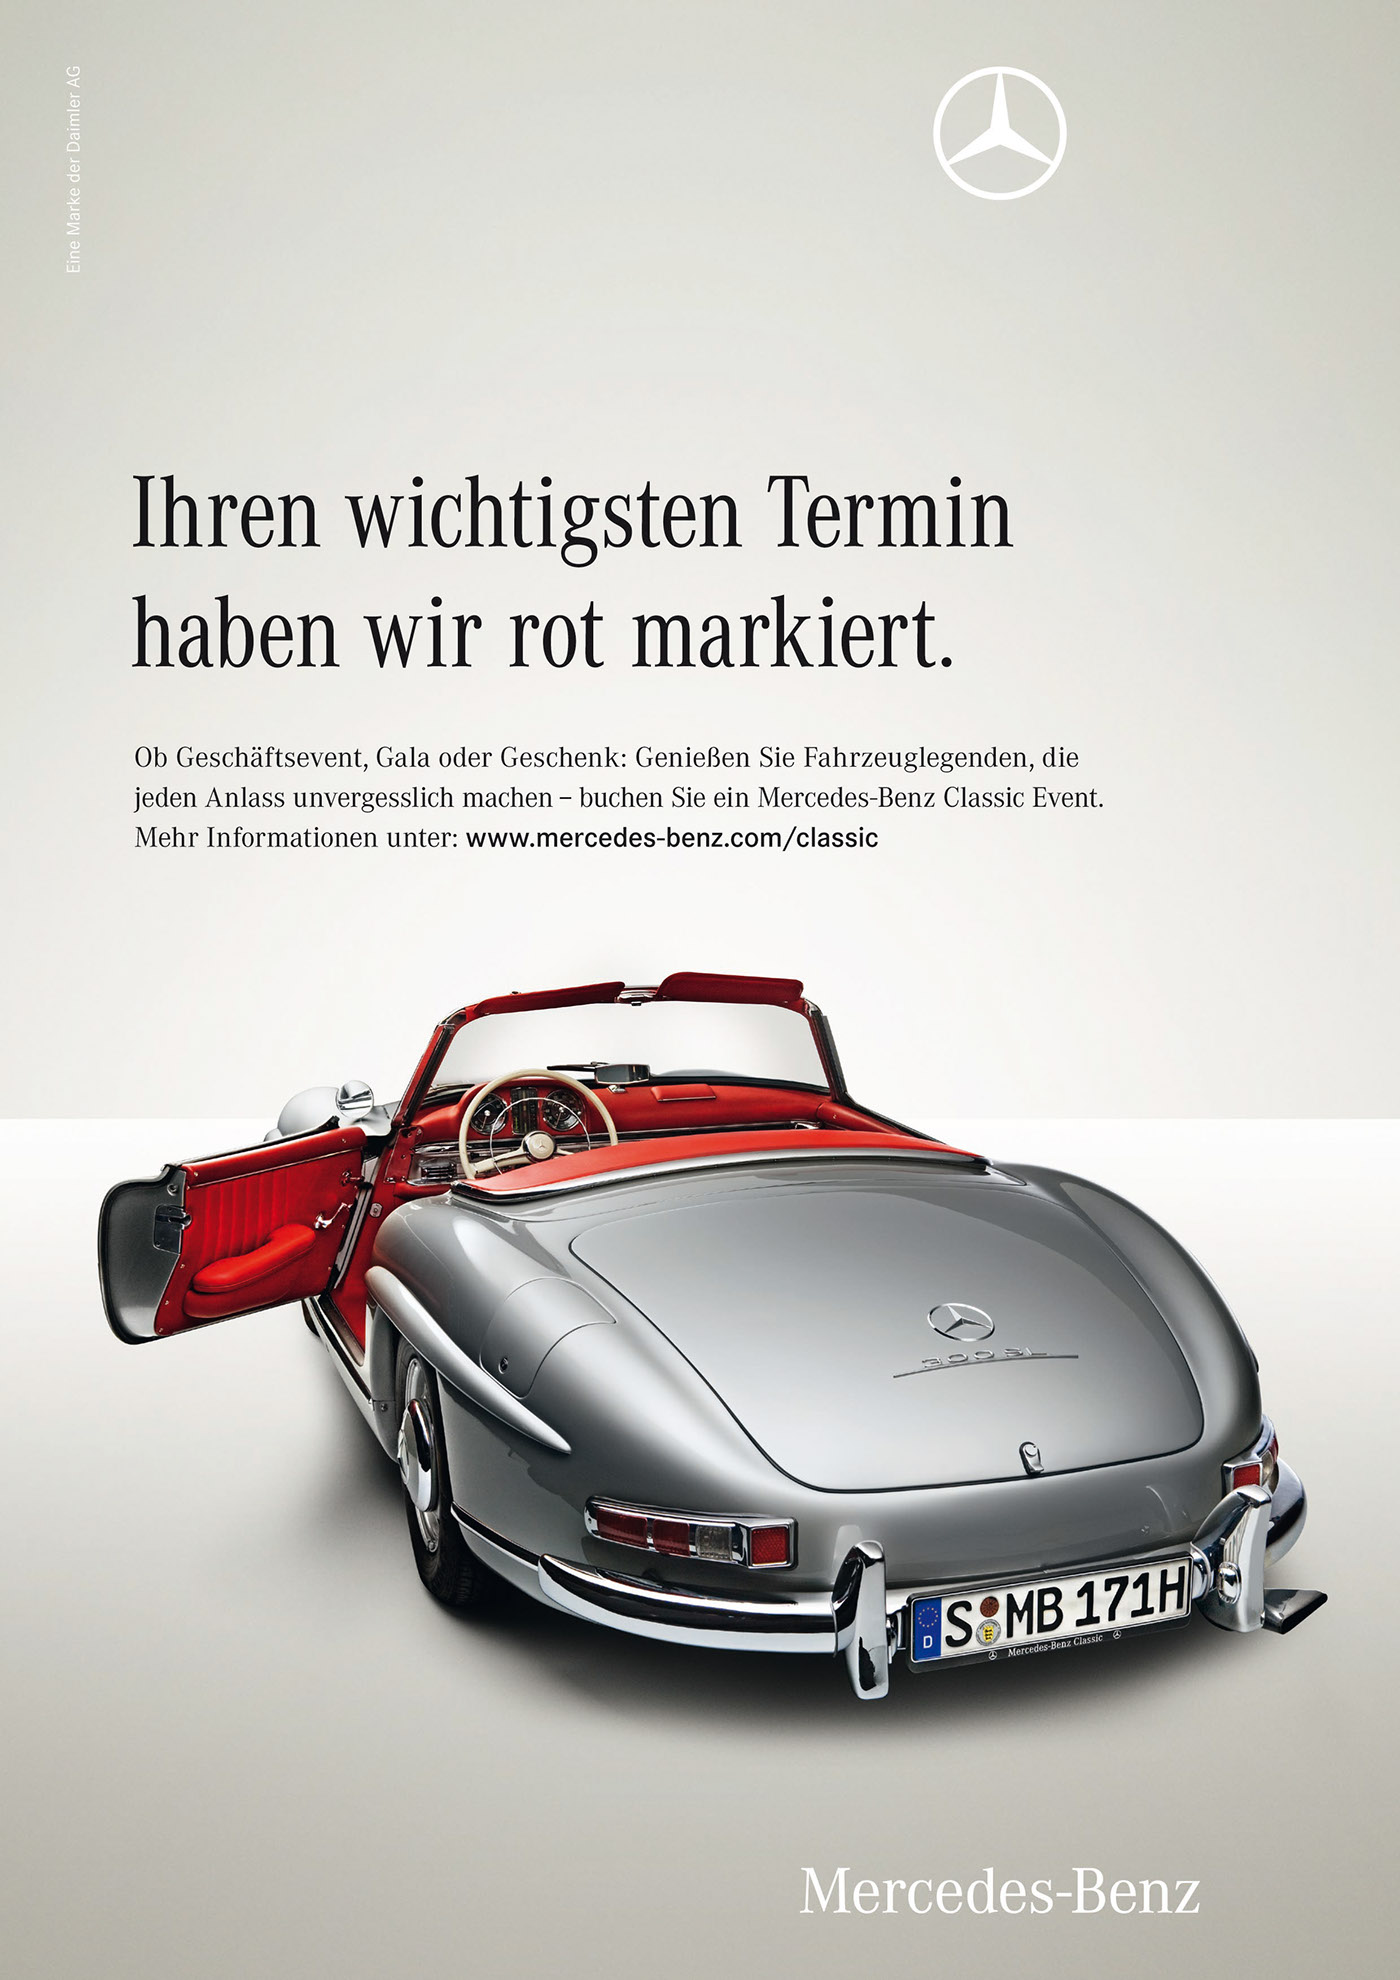 Mercedes benz classic on behance for Mercedes benz classic center germany